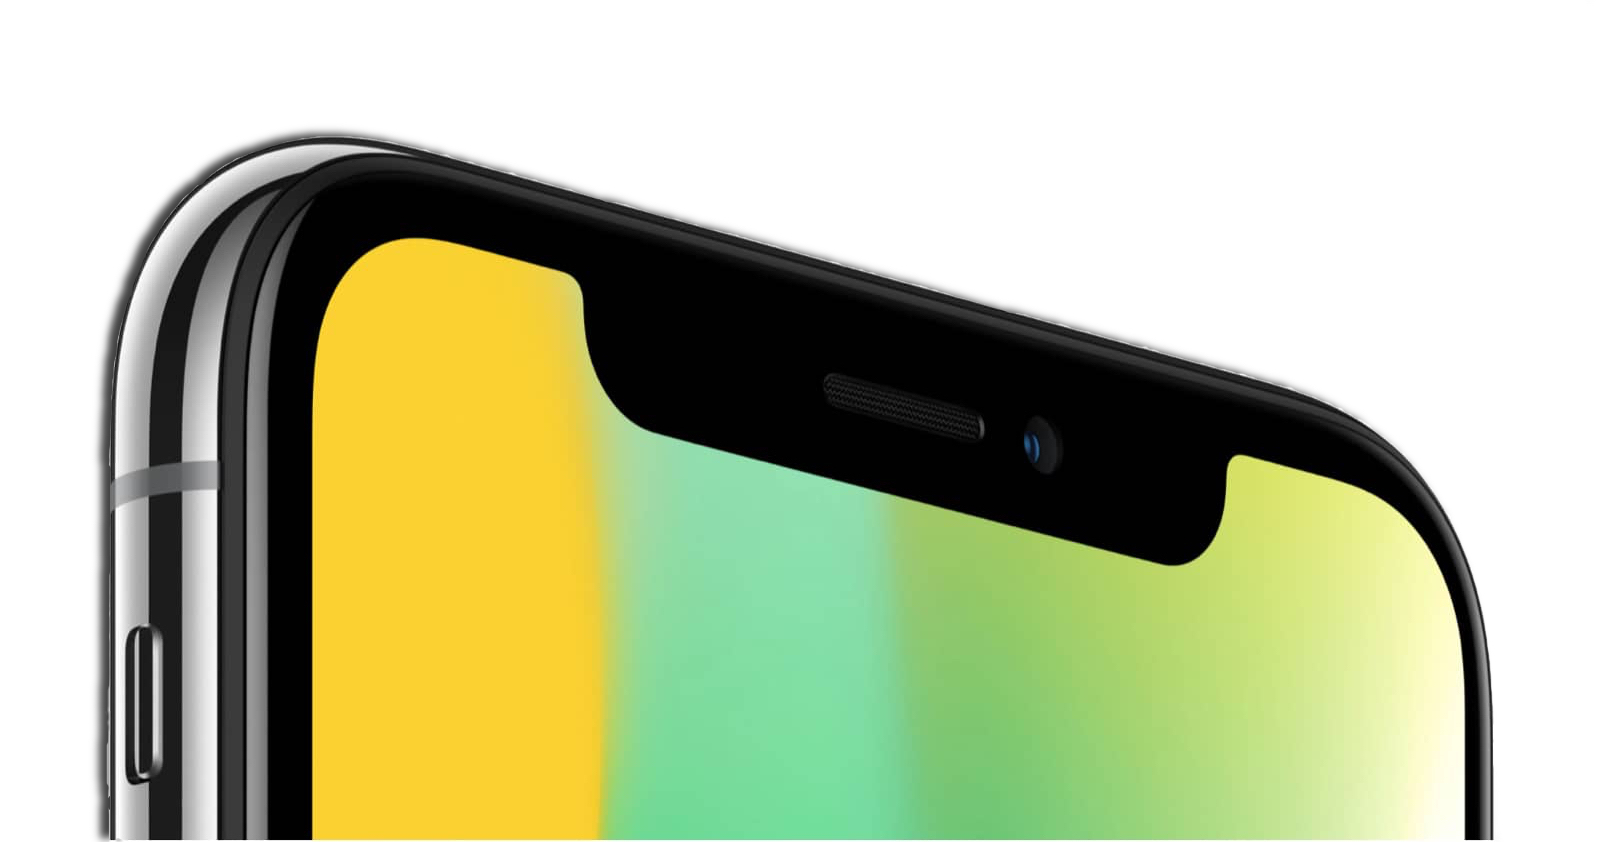 Iphone X Features All The New Camera Features In Iphone 8 8 Plus And